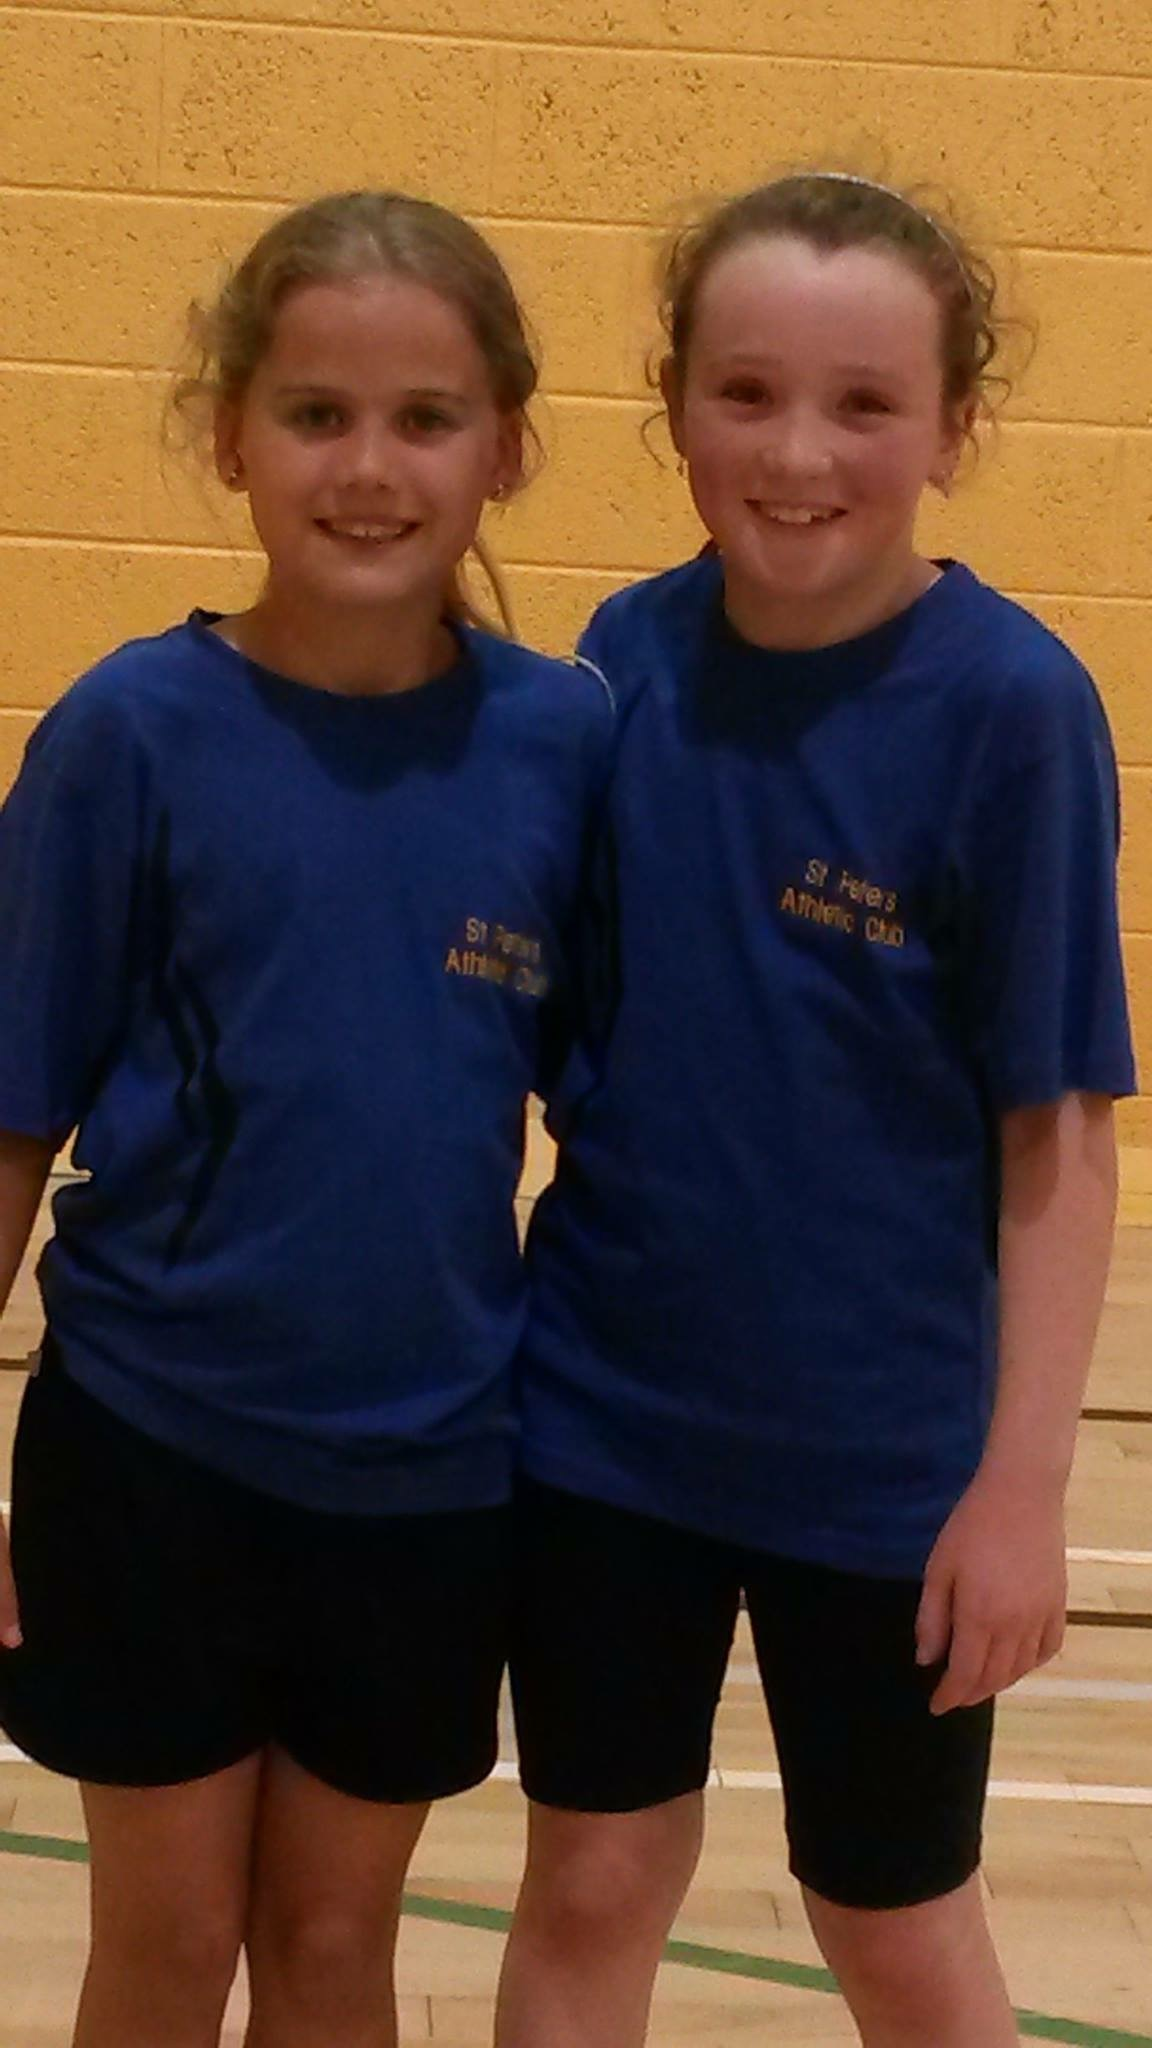 Isibeal Fitzpatrick and Katie Mulligan at Irish Childrens' Games (Tullamore, June 2015)